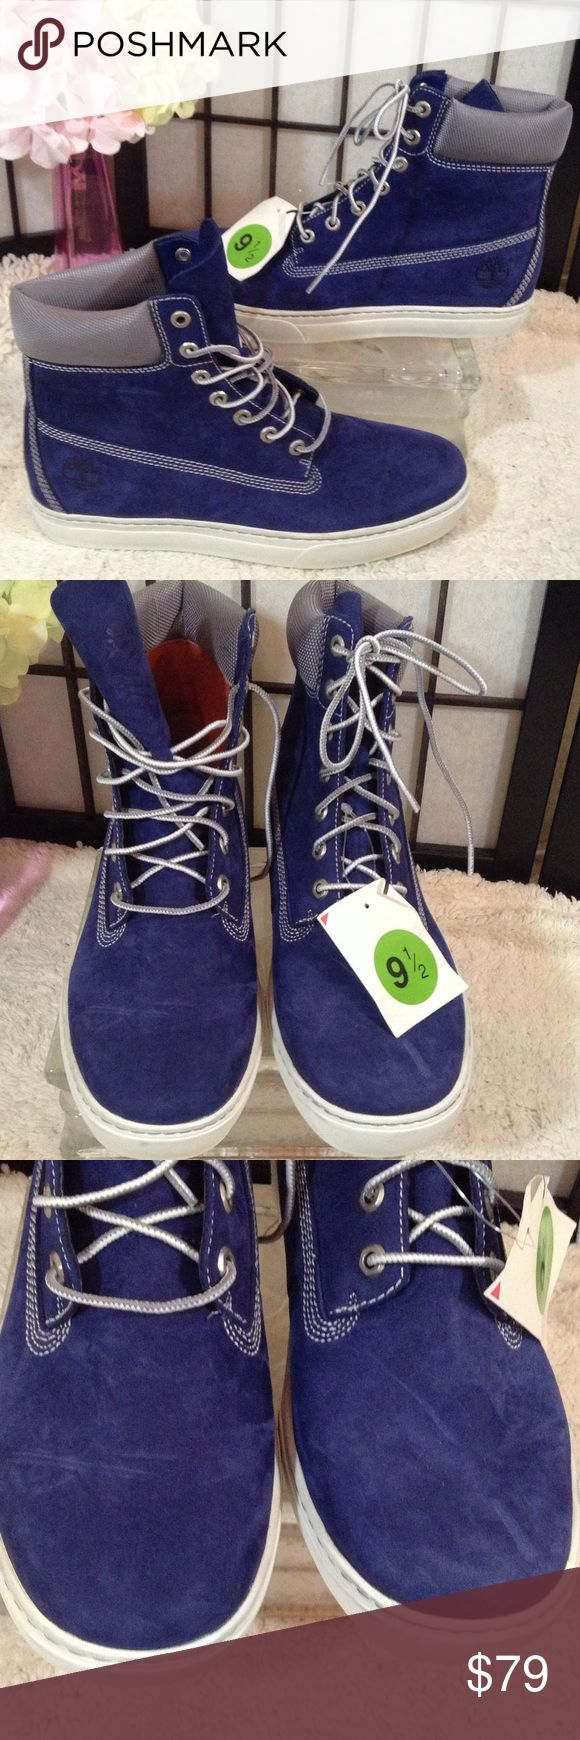 Men's Timberland blue suede boots Boots or sneakers - call them whatever you like - but they look good! Gorgeous blue color leather - suede but very short nap; gray trim; NWOT except size tag; size 9.5M Timberland Shoes Boots